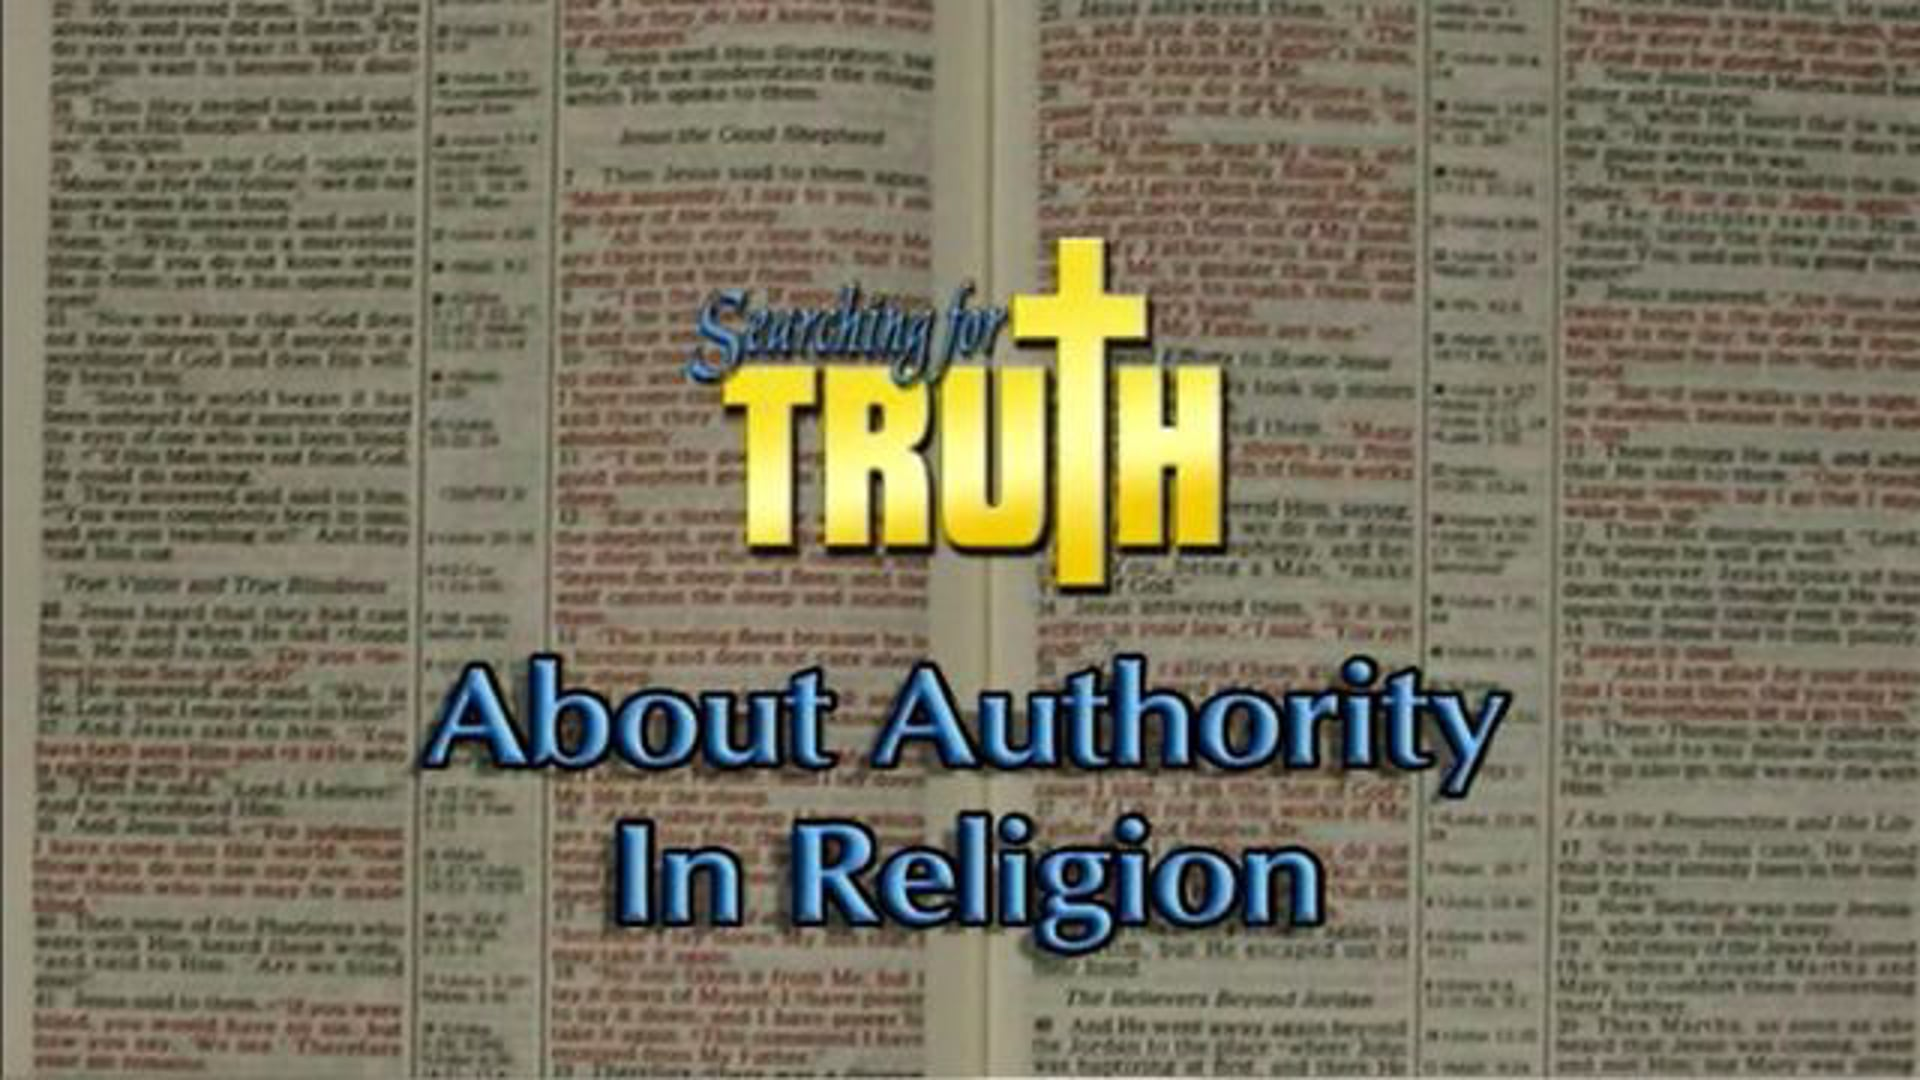 Searching for Truth About Authority in Religion